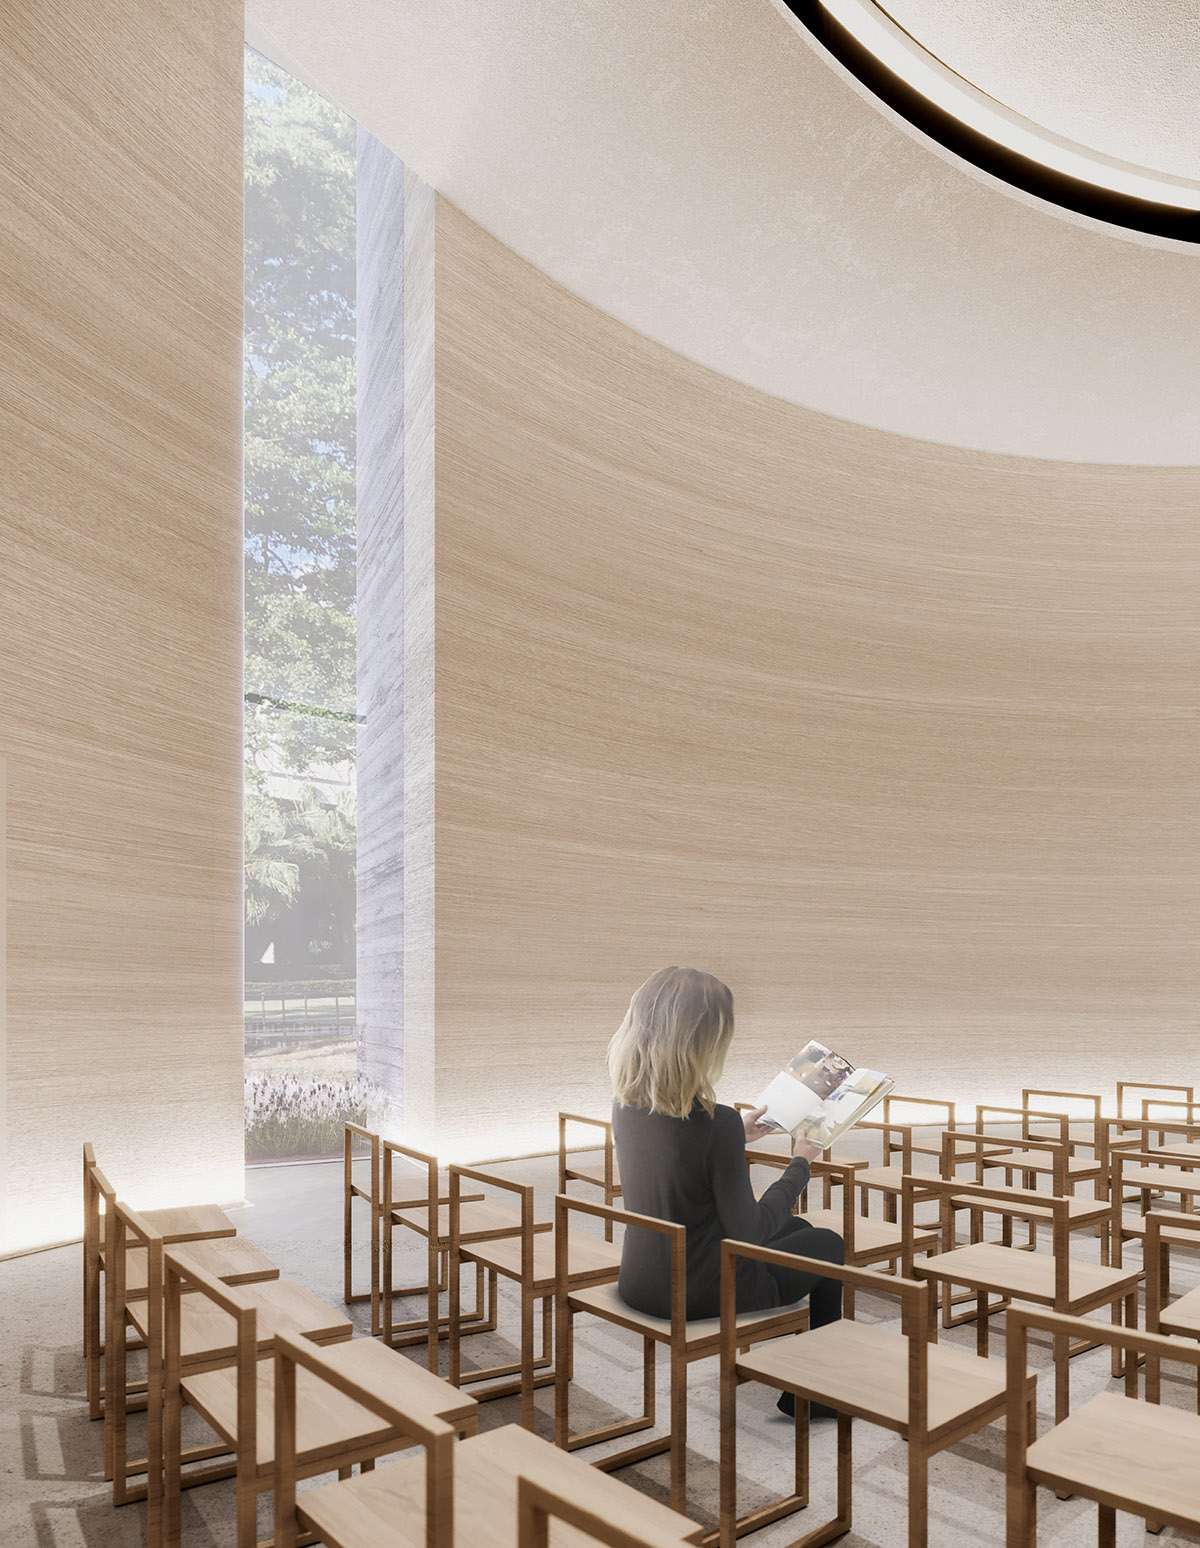 Trahan Architects designs a church for Loyola University